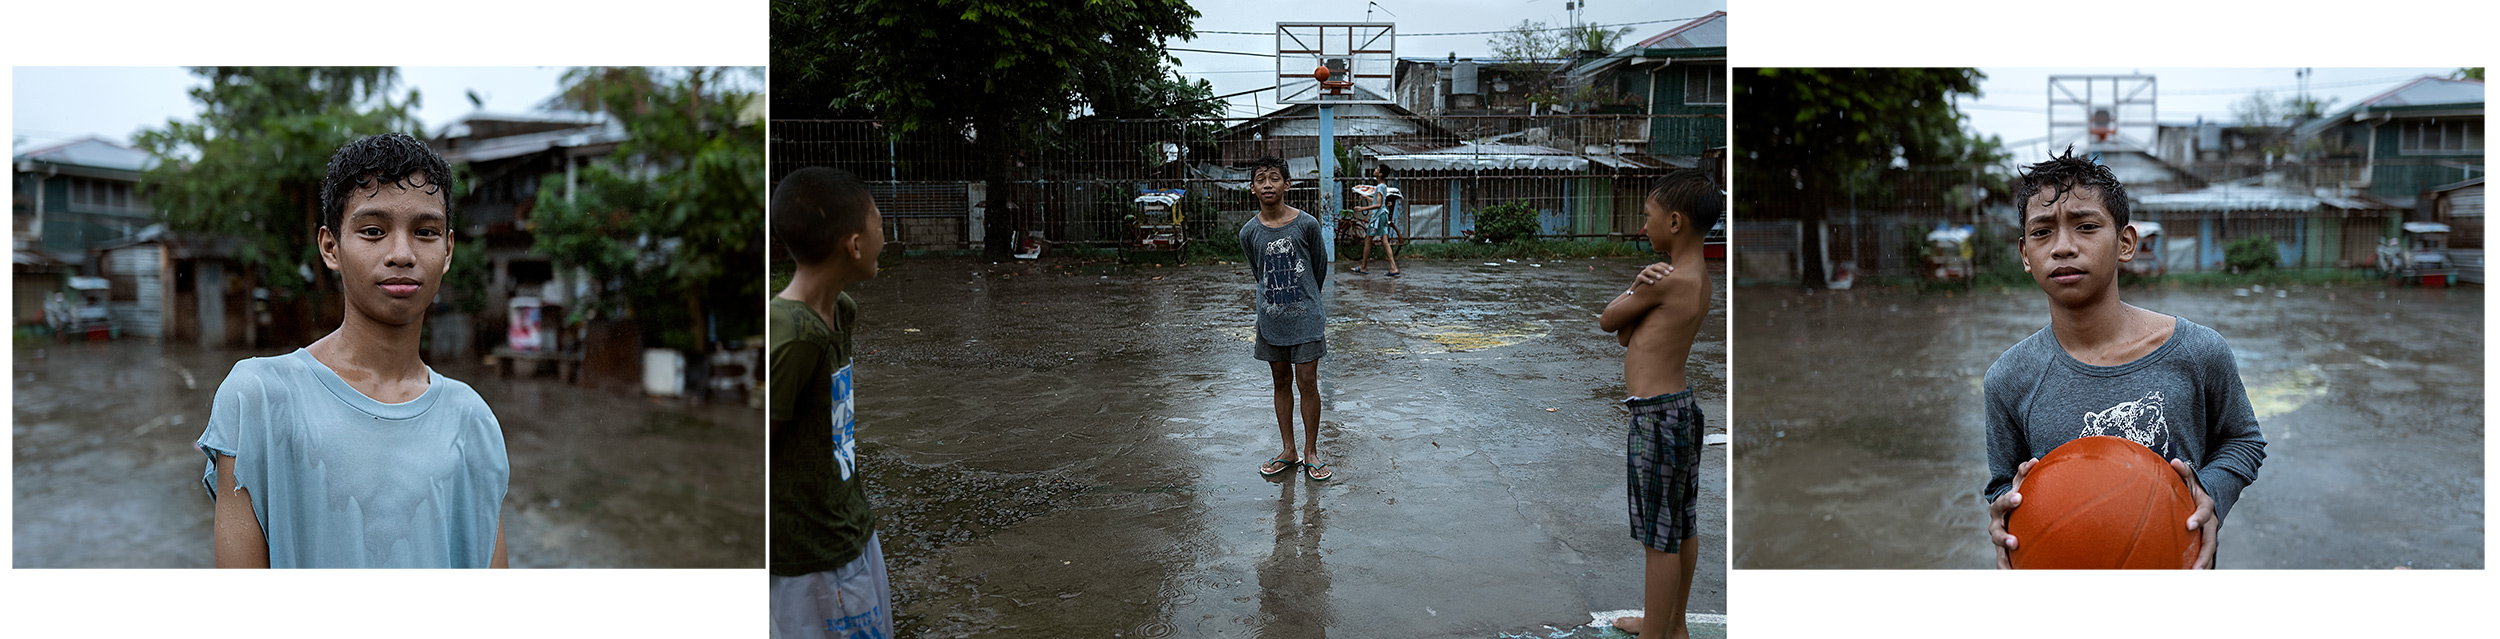 Good Boy Wolf Photographer, Philippines, basketball boys playing in the rain